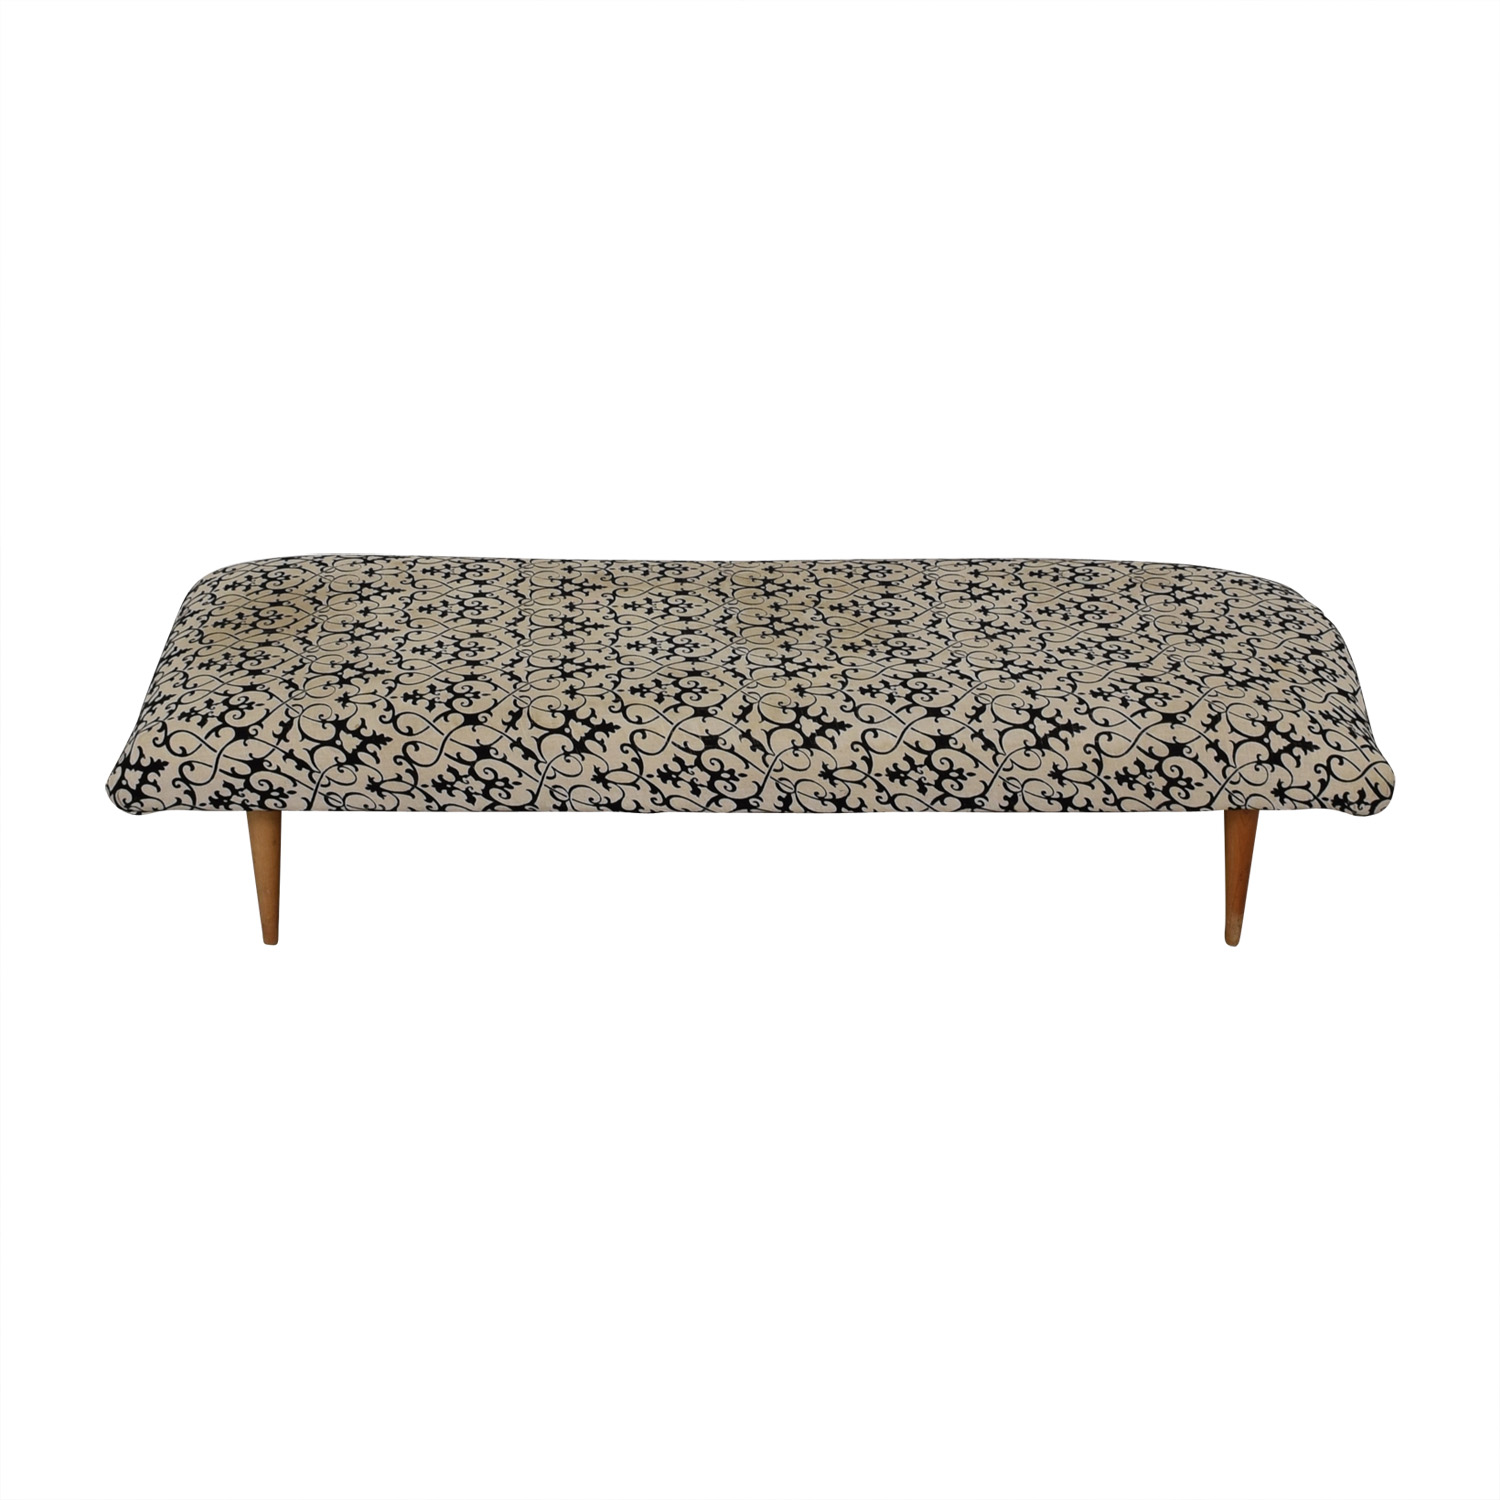 shop Vintage White and Black Upholstered Bench  Benches